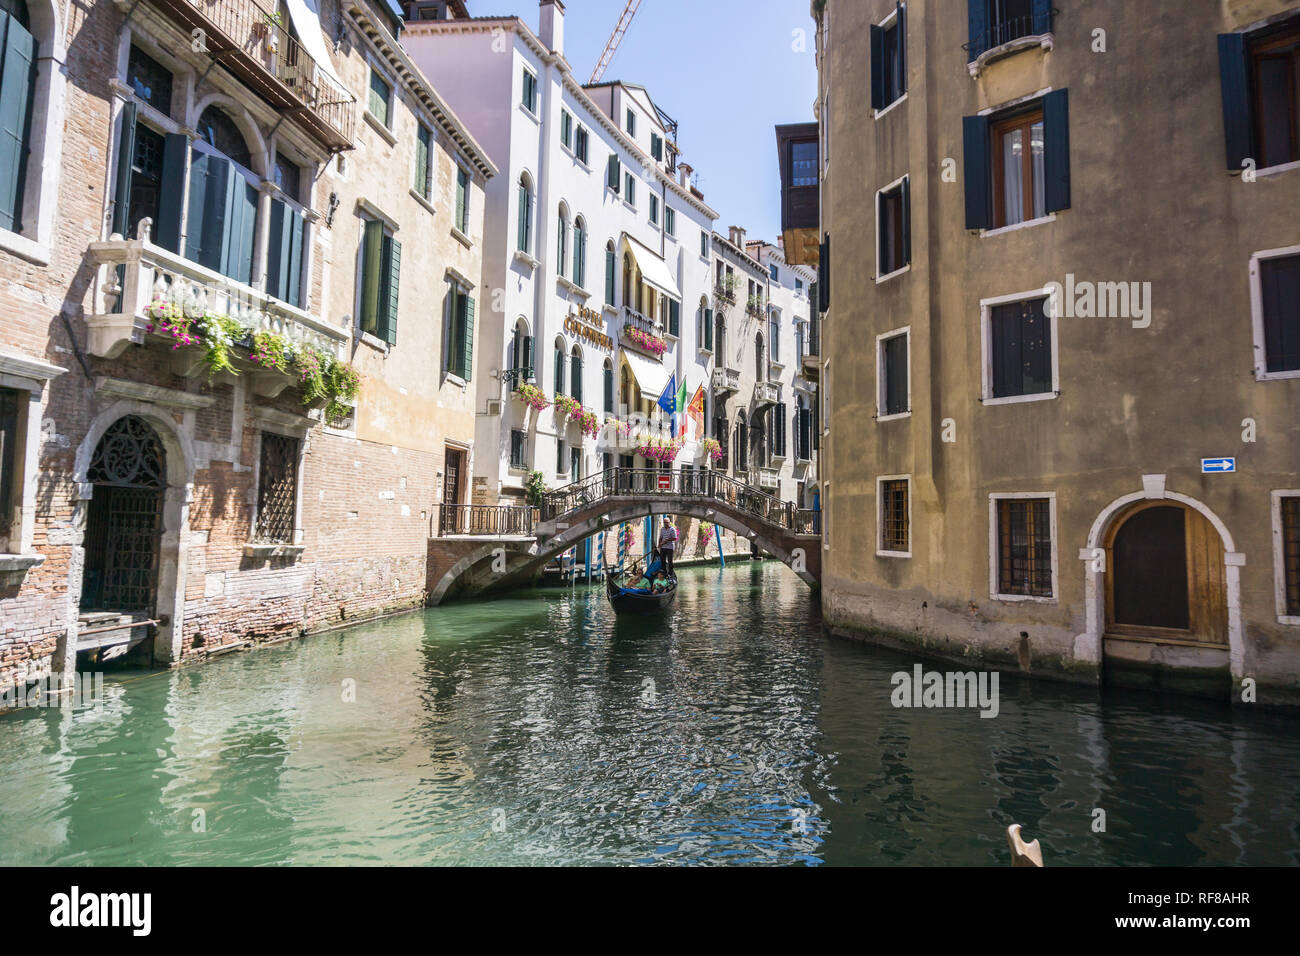 View of the Rio Marin Canal with boats and gondolas from the Ponte de la Bergami in Venice, Italy. Venice is a popular tourist destination of Europe. VENICE, ITALY - 14.8.2017 Stock Photo